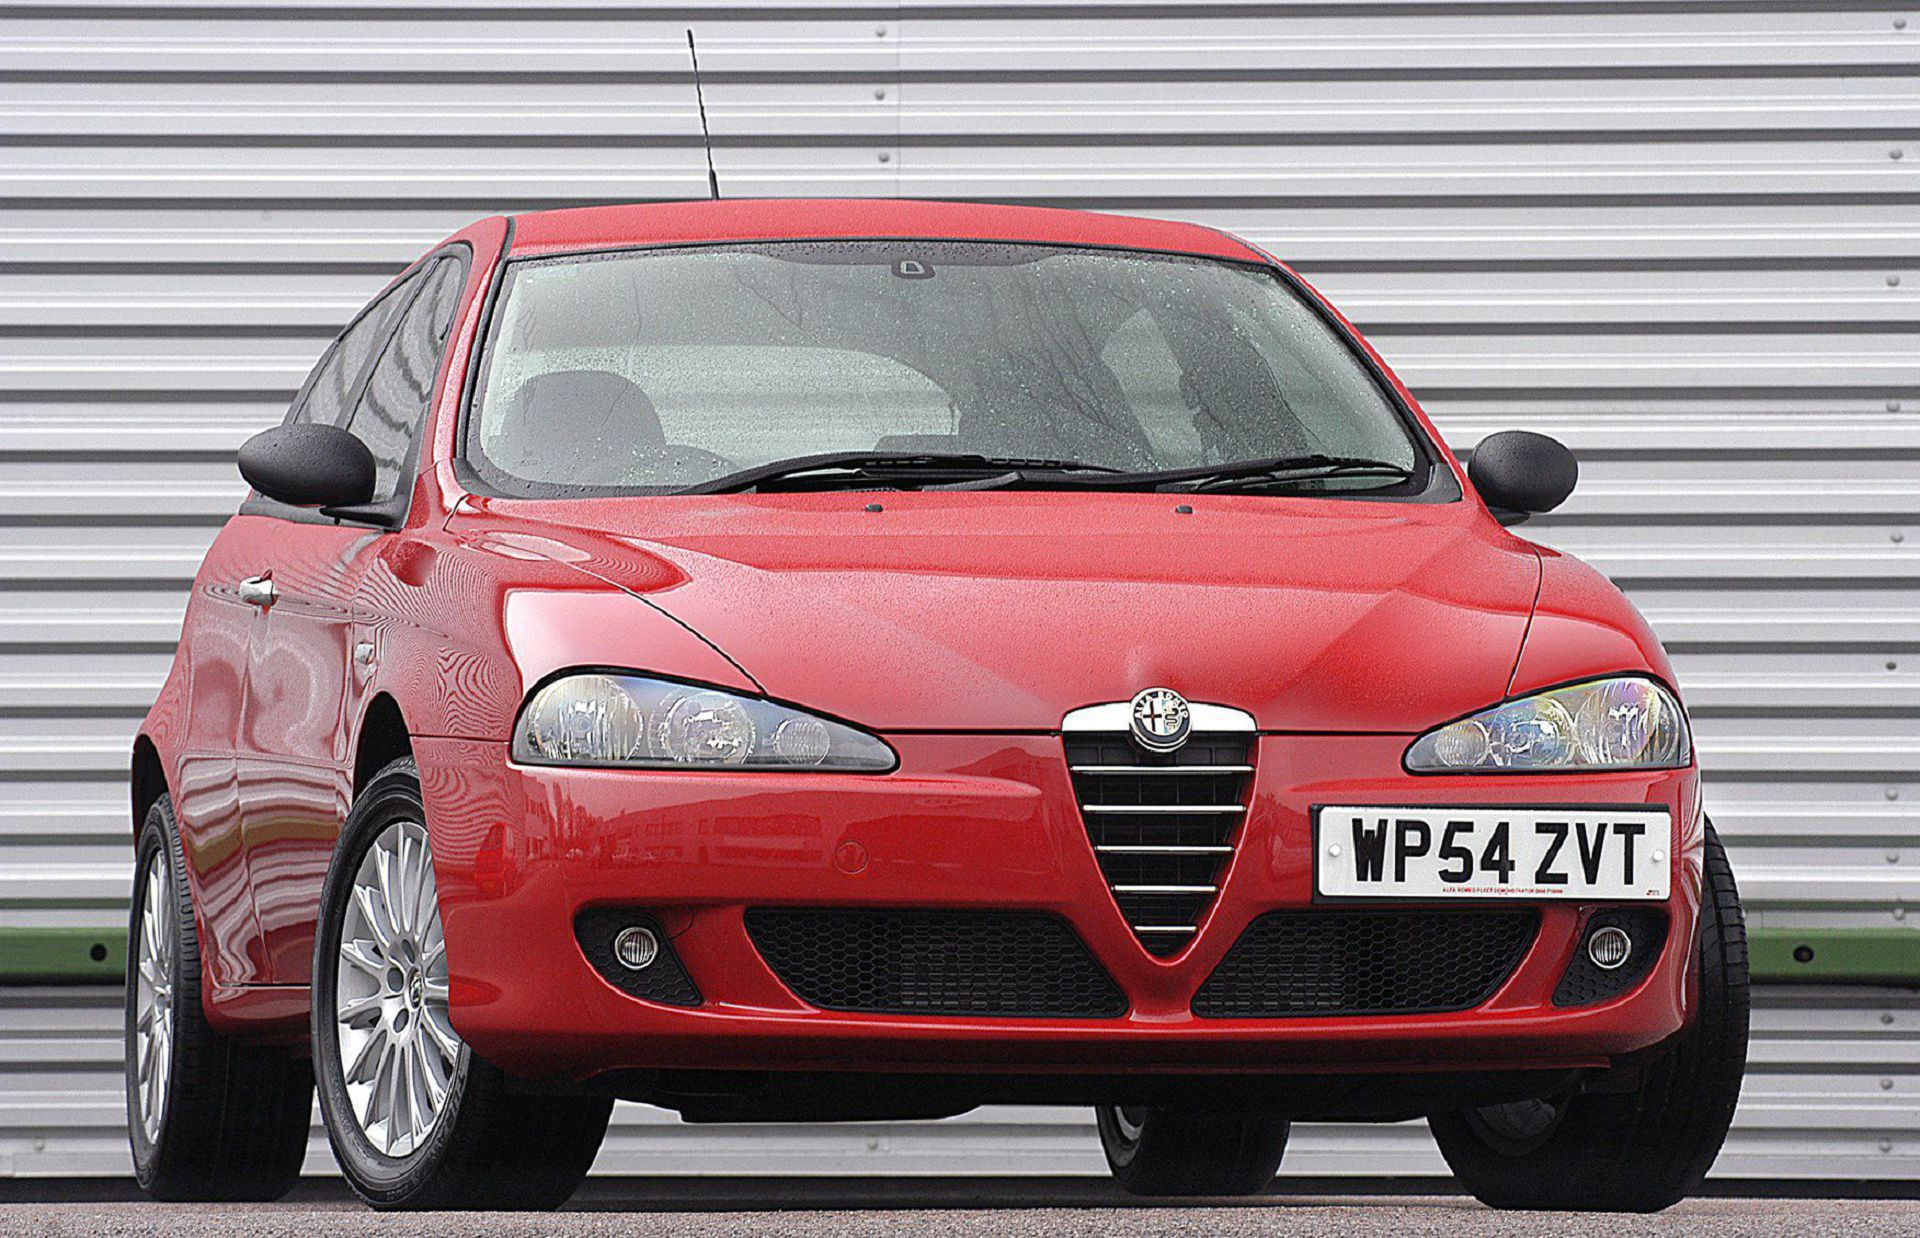 Alfa Romeo 147 HD Background